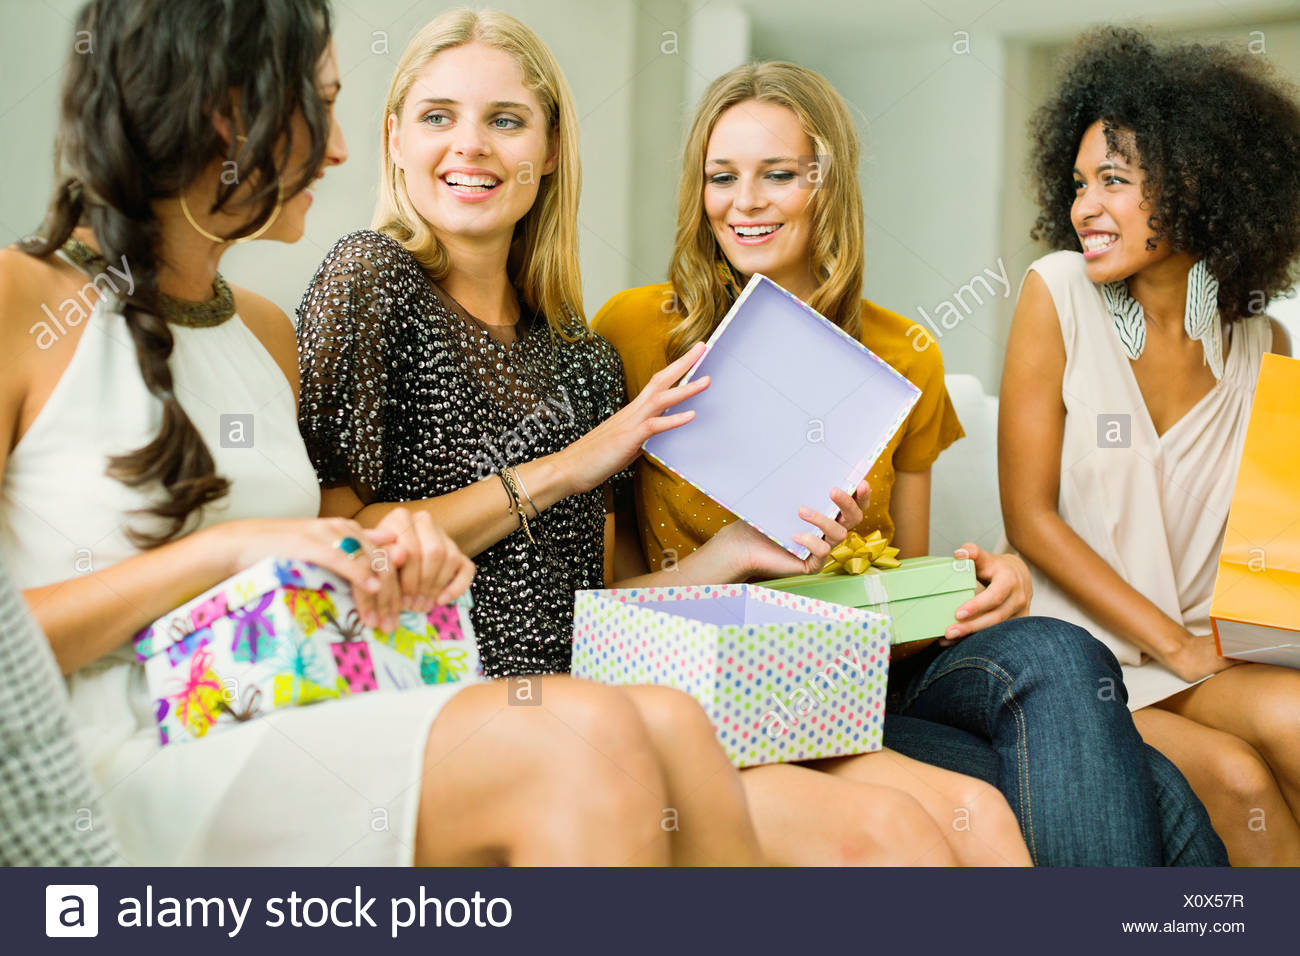 Woman opening gifts at birthday party - Stock Image